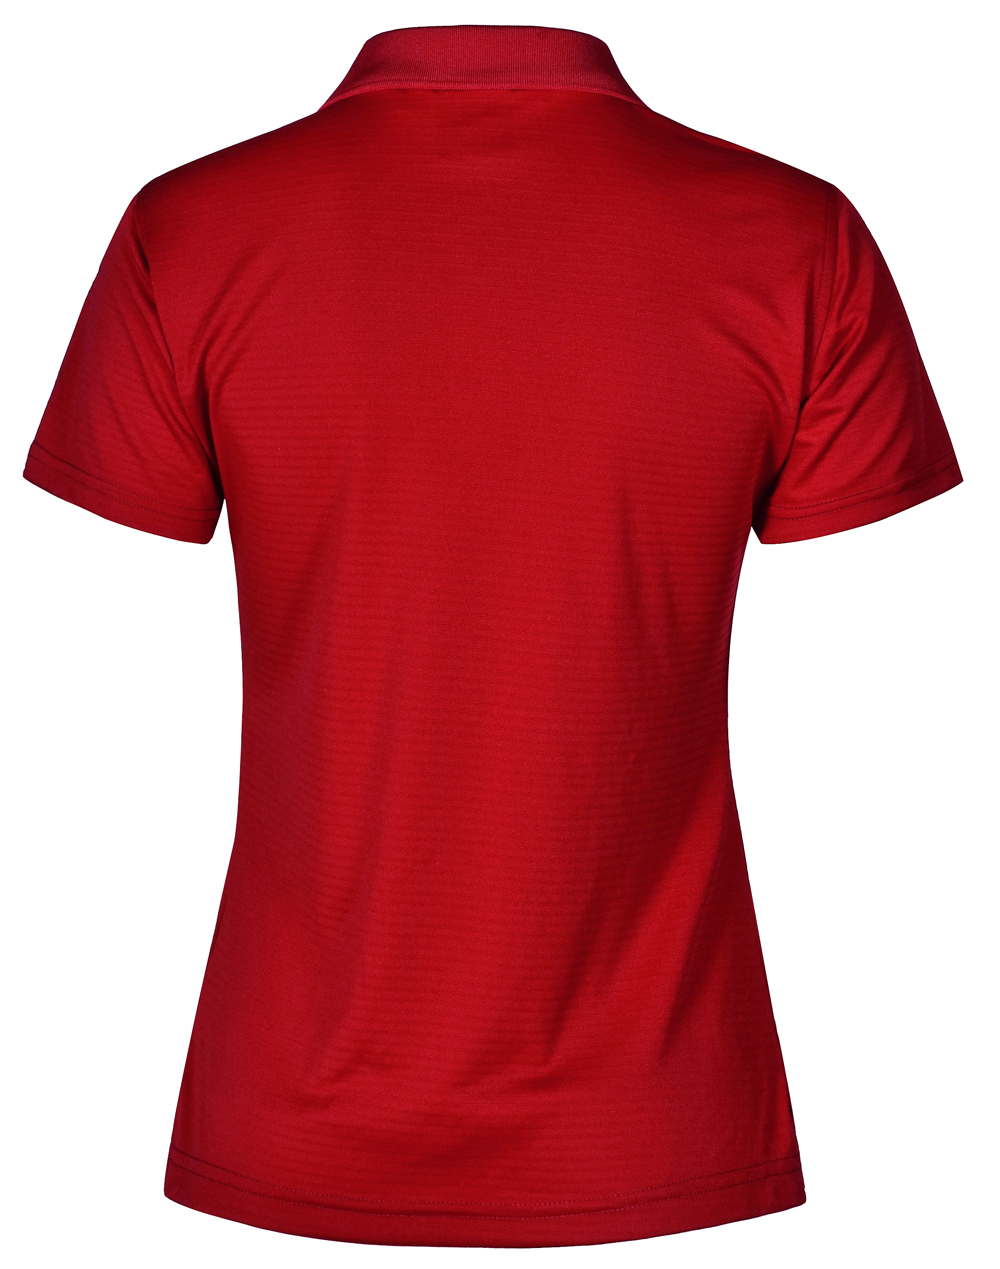 https://s3-ap-southeast-1.amazonaws.com/ws-imgs/POLOSHIRTS/PS76_Red_back.jpg